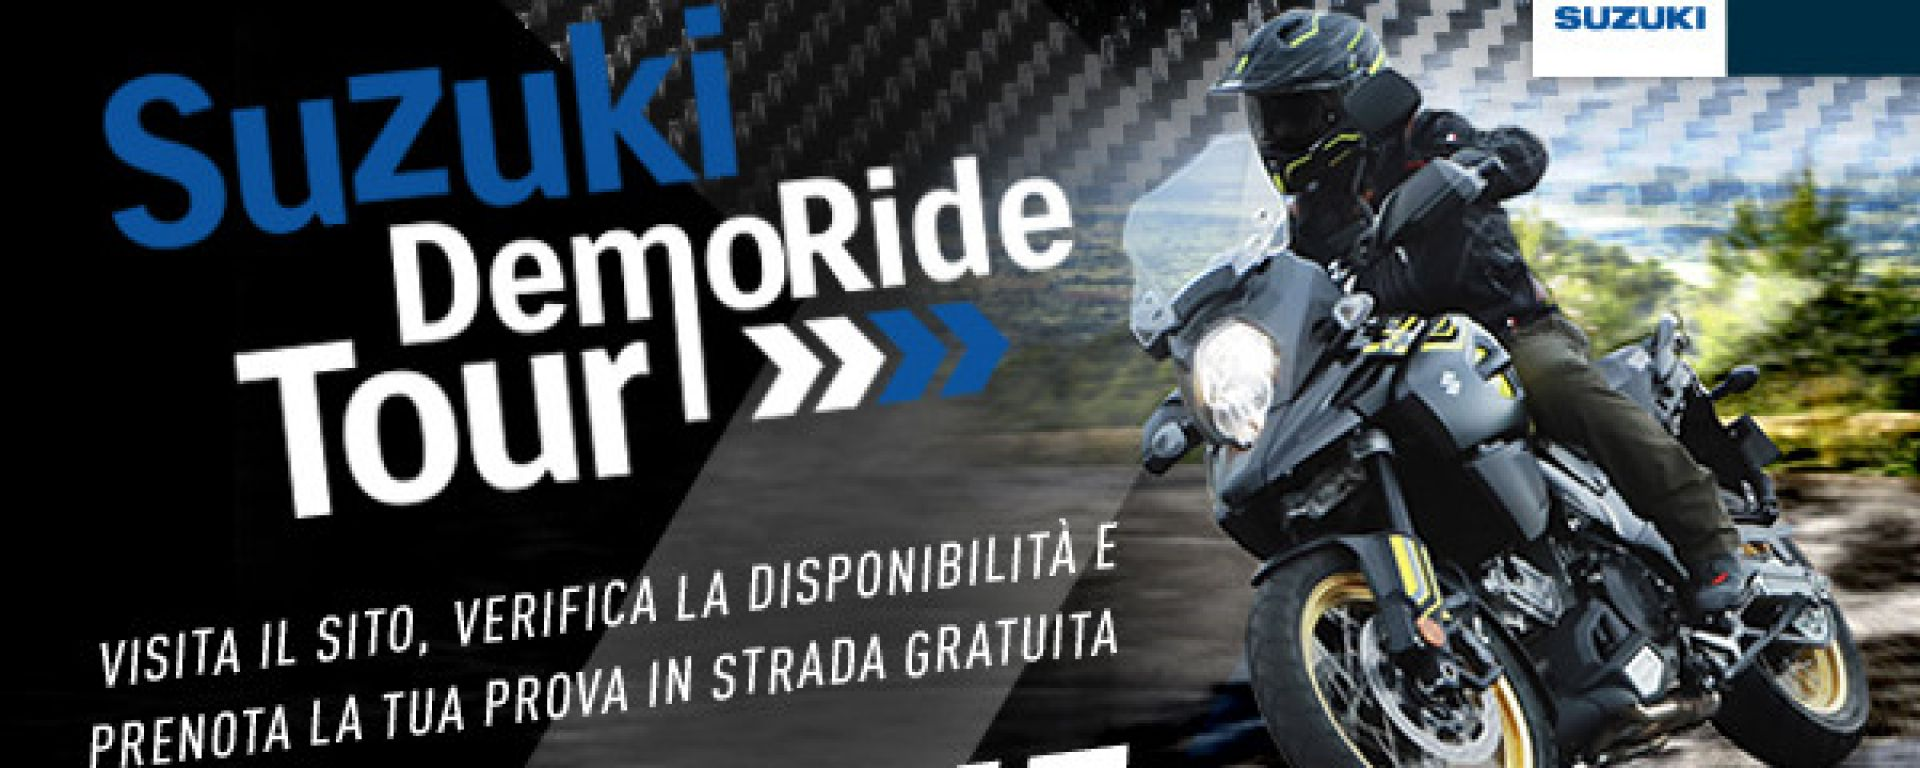 Suzuki Katana e DemoRide Tour 2019: ultimo weekend di prove